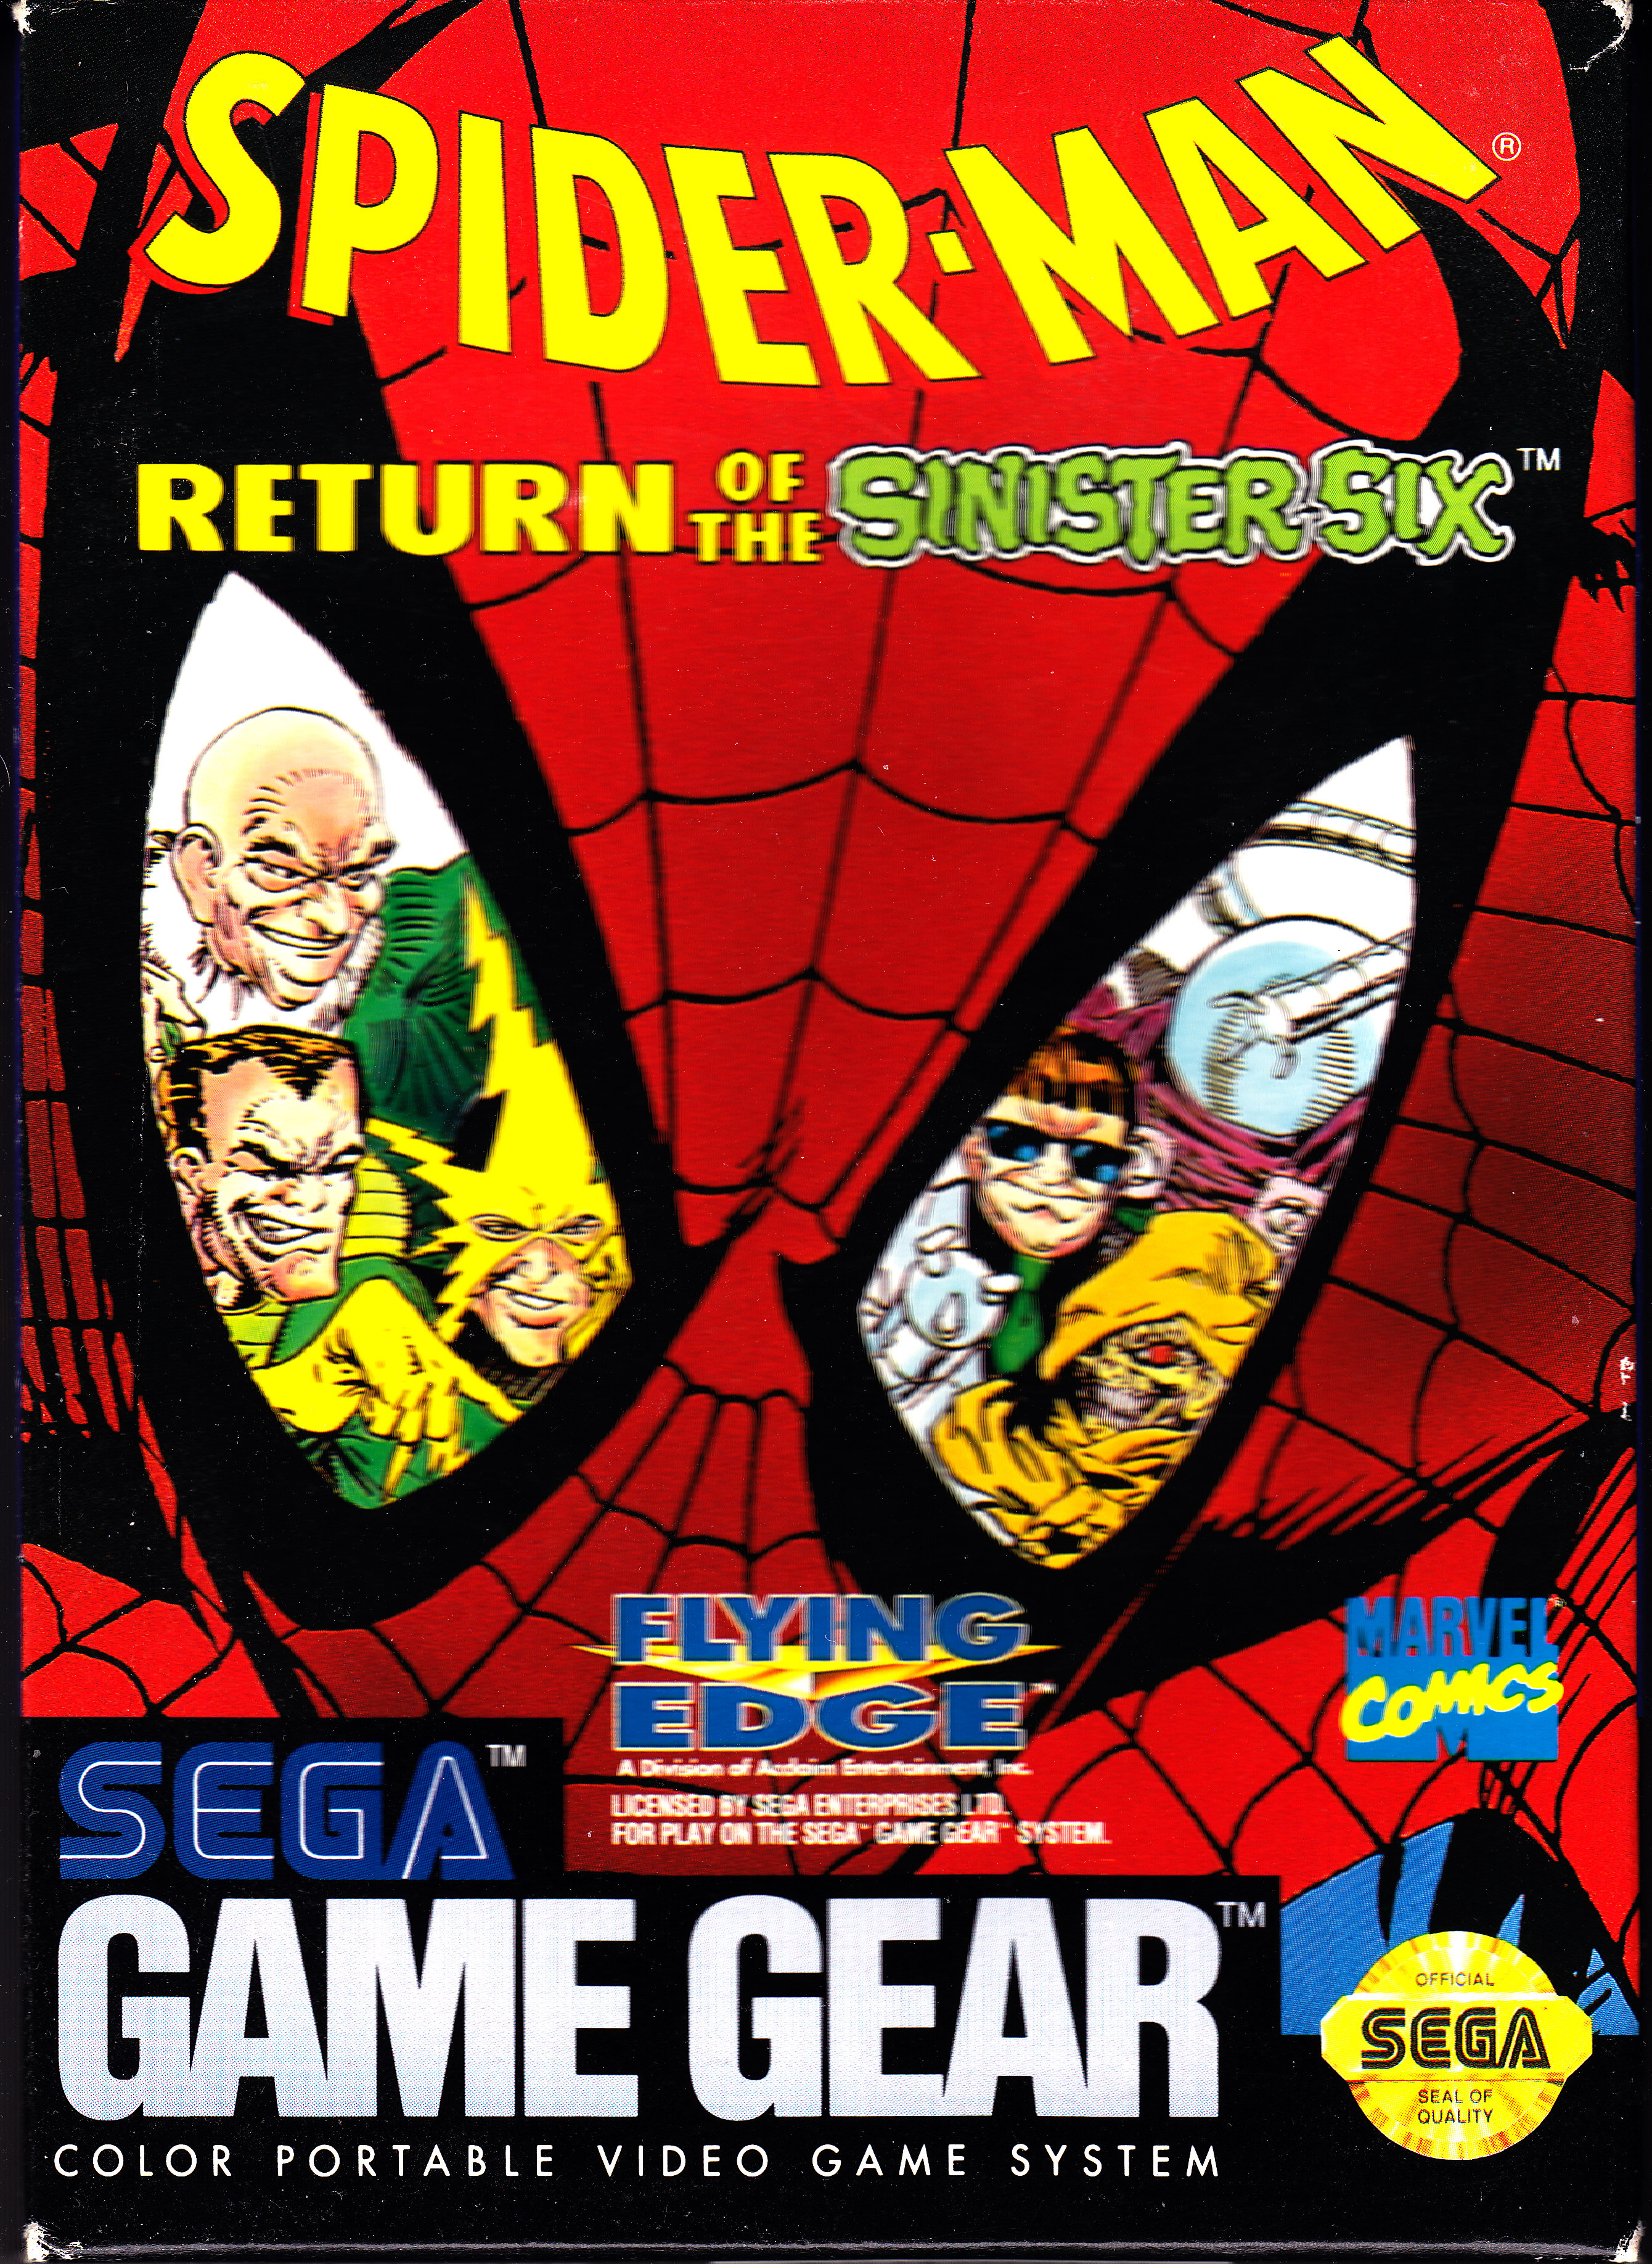 Sega Game Gear Spider-Man Return of the Sinister Six Front Cover.jpg